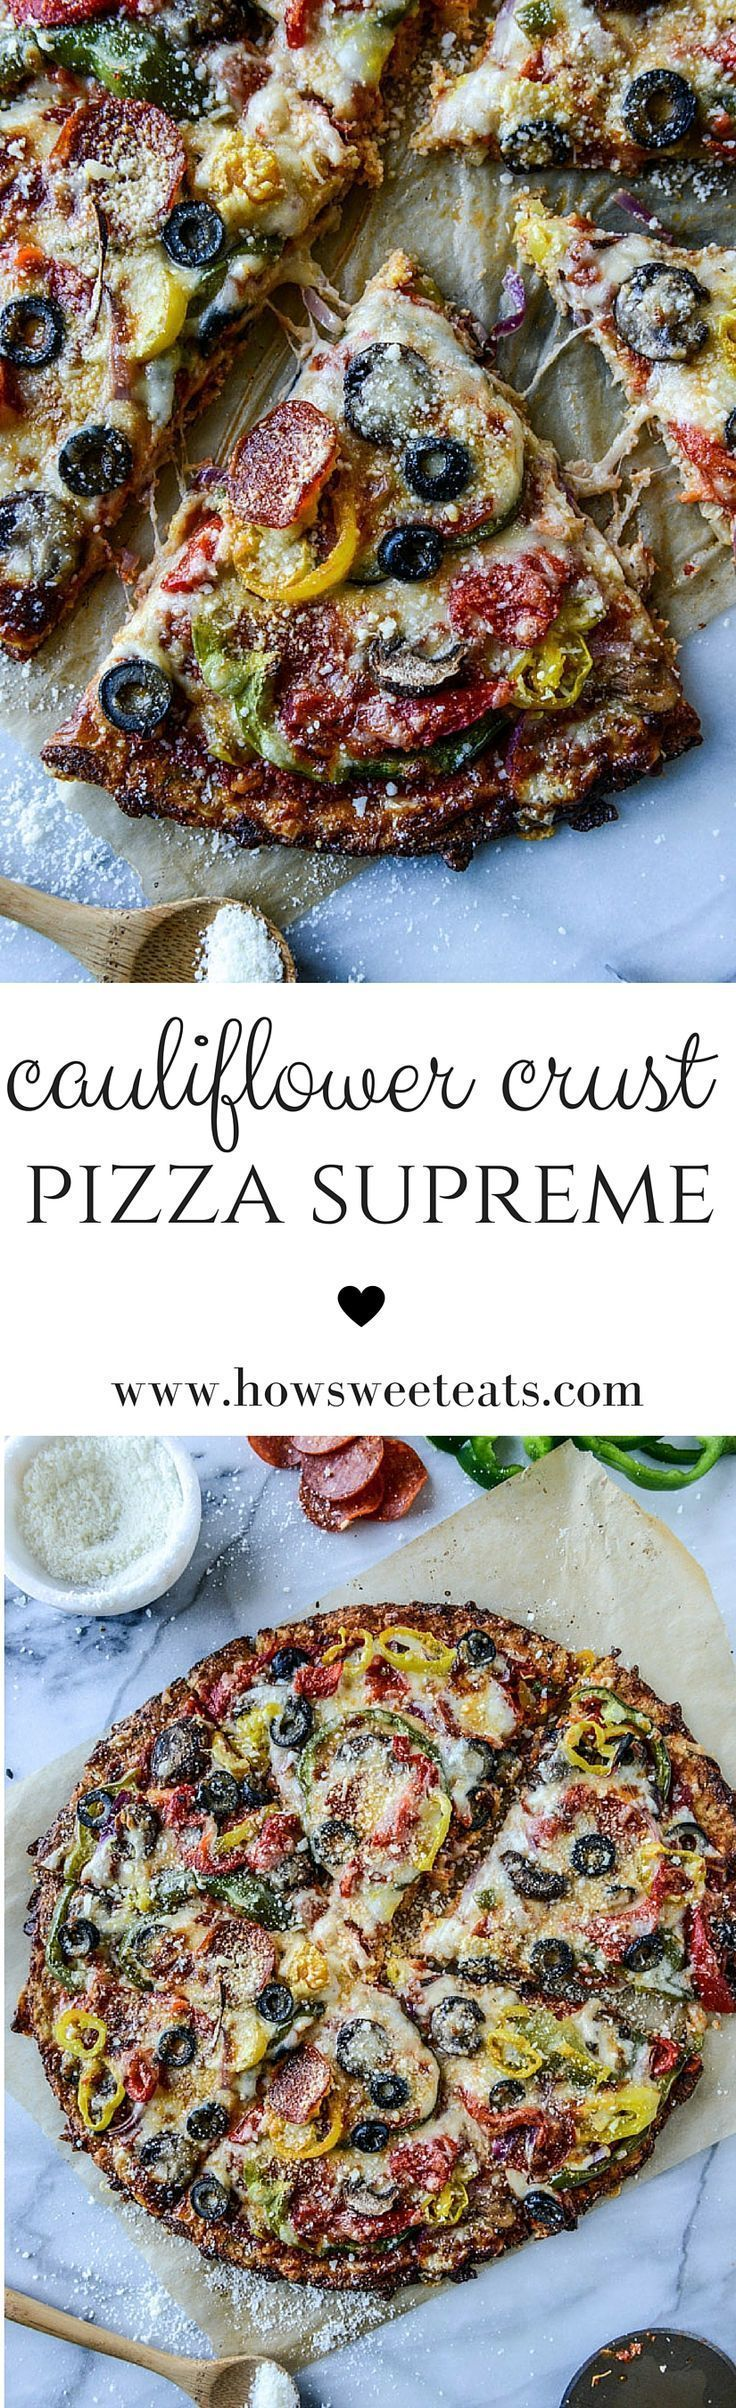 Pizza Supreme on Cauliflower Crust by @howsweeteats I howsweeteats.com